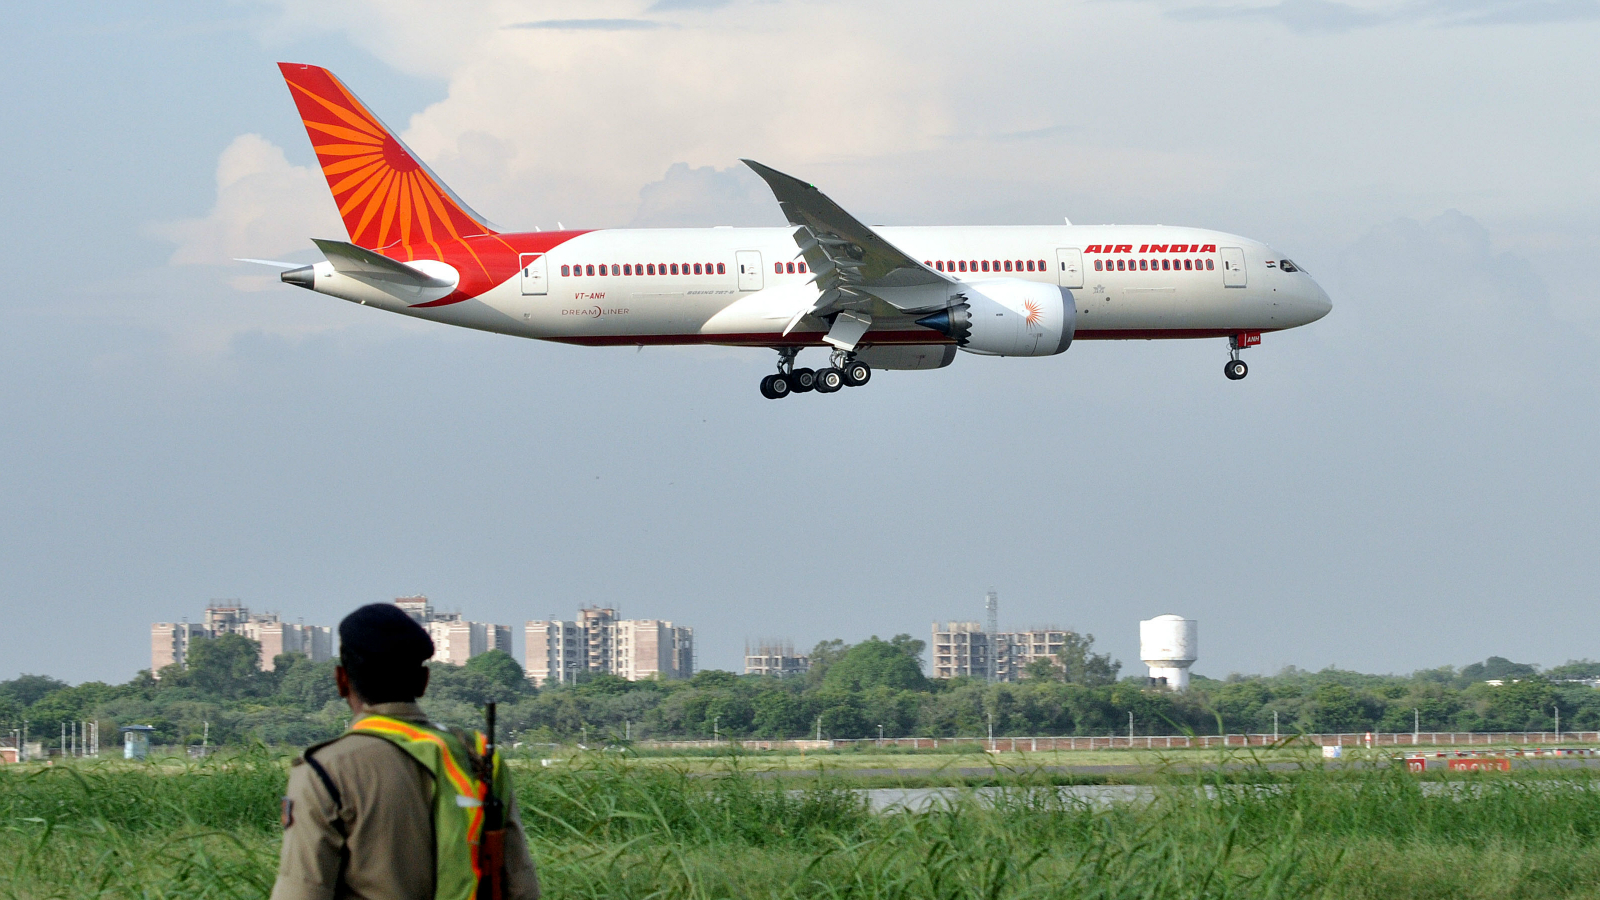 Air India's first Boeing 787 Dreamliner aircraft approaches for a landing at Indira Gandhi International Airport in New Delhi, India, 08 September 2012. The aircraft is the first of the 27, 256-seater aircraft ordered by the state-run airline.